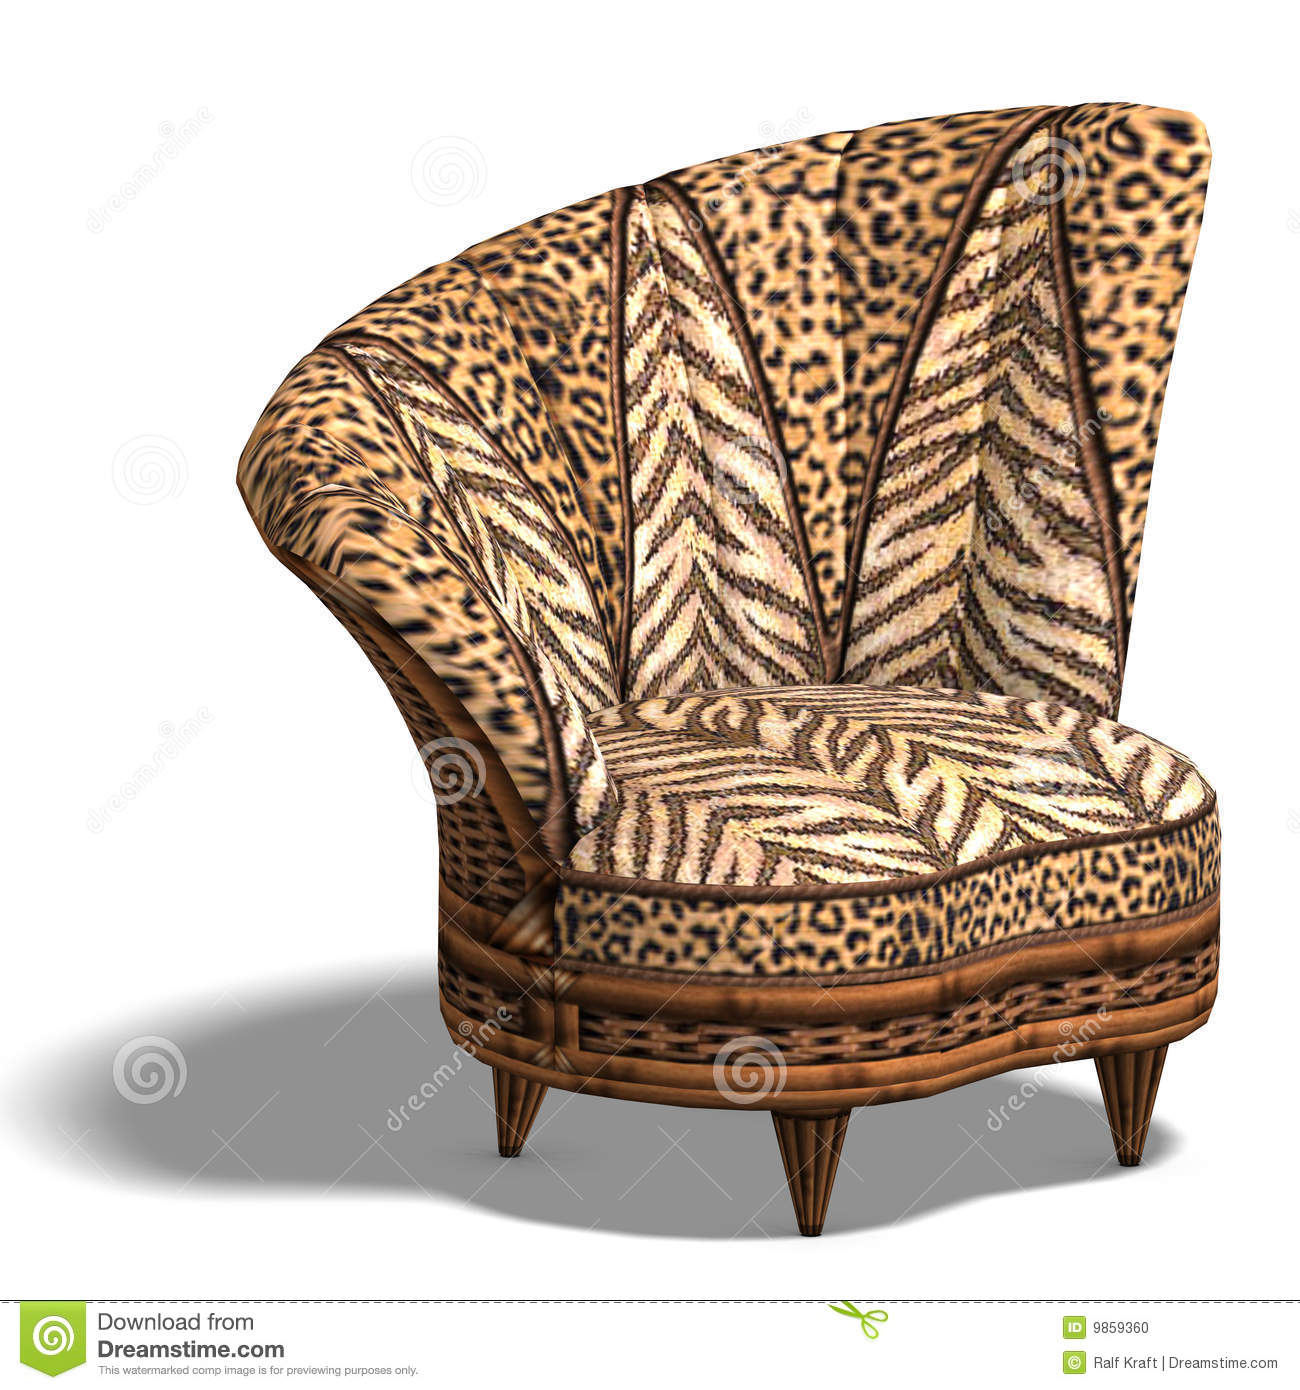 fy Chair With African Design Stock Image